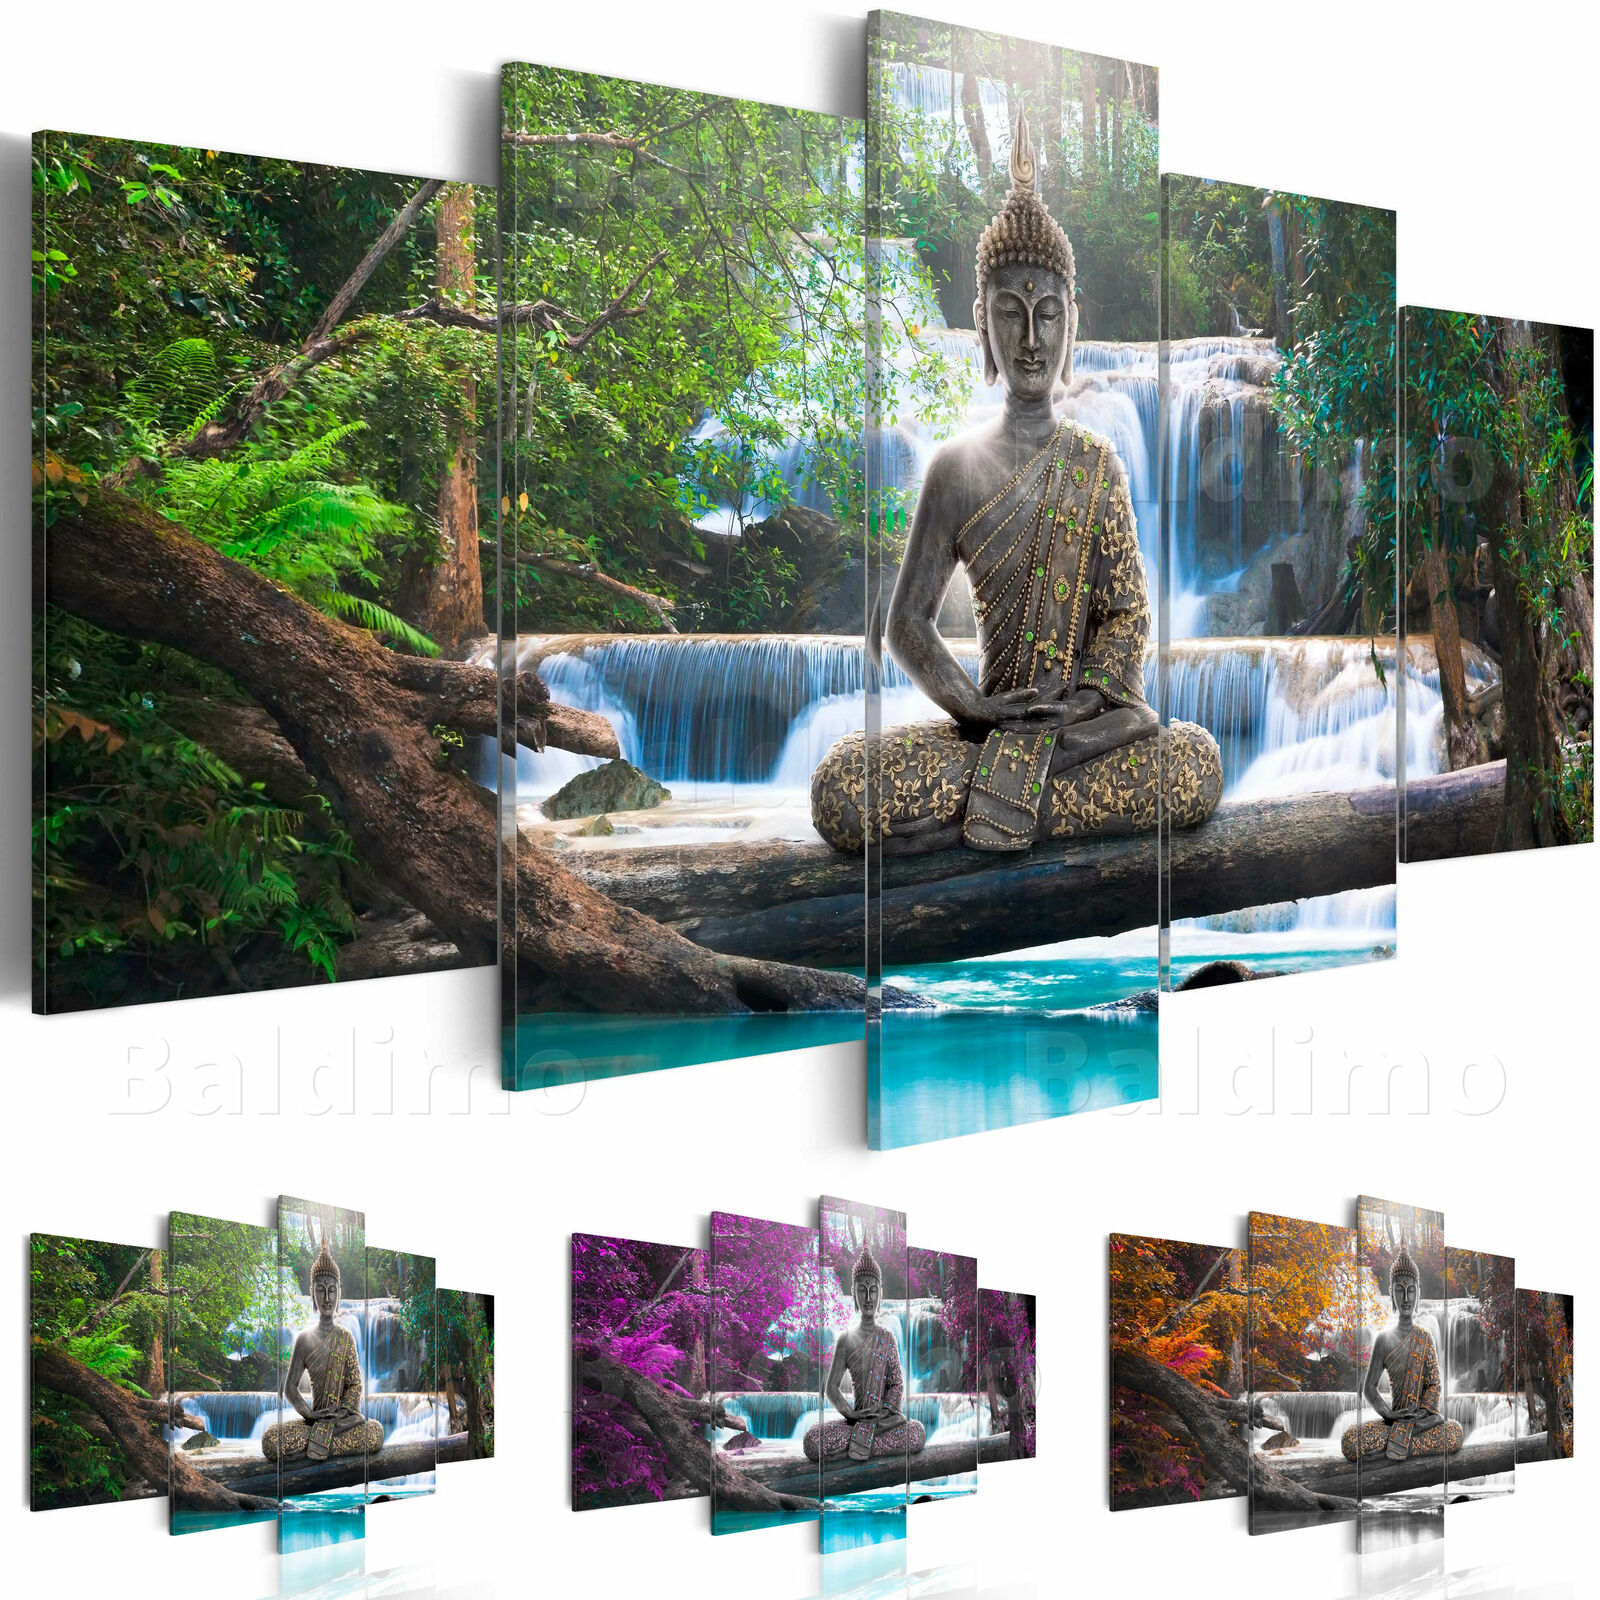 wandbilder xxl buddha wald wasserfall leinwand bilder wohnzimmer c a 0021 b n eur 24 90. Black Bedroom Furniture Sets. Home Design Ideas